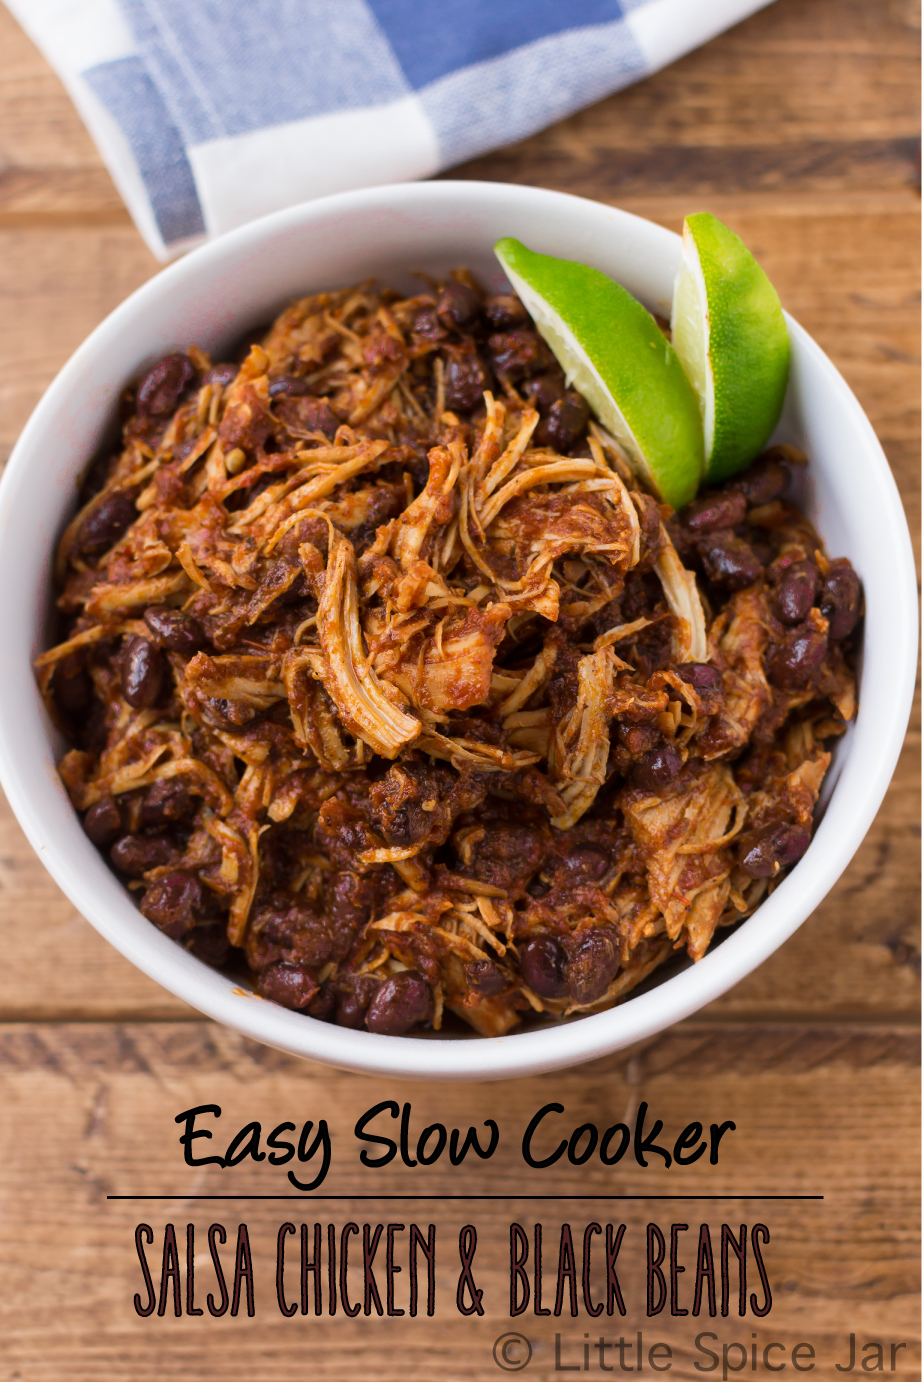 Easy-Slow-Cooker-Salsa-Chicken-with-Black-Beans-Shredded-Chicken-&-Black-Beans-with-text